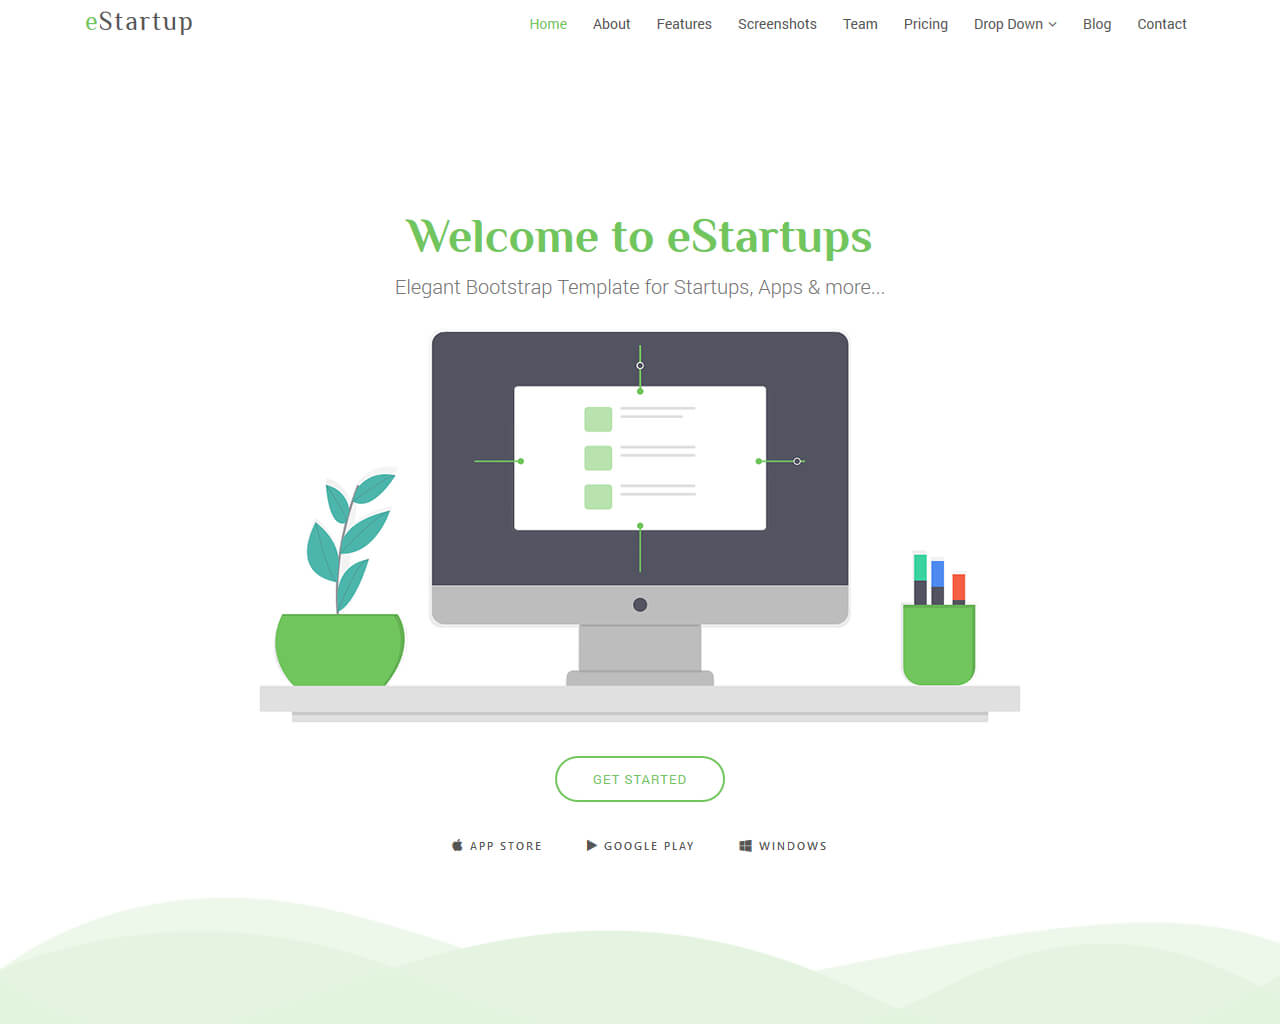 eStartup – Free Bootstrap Template for Startups, Apps and more